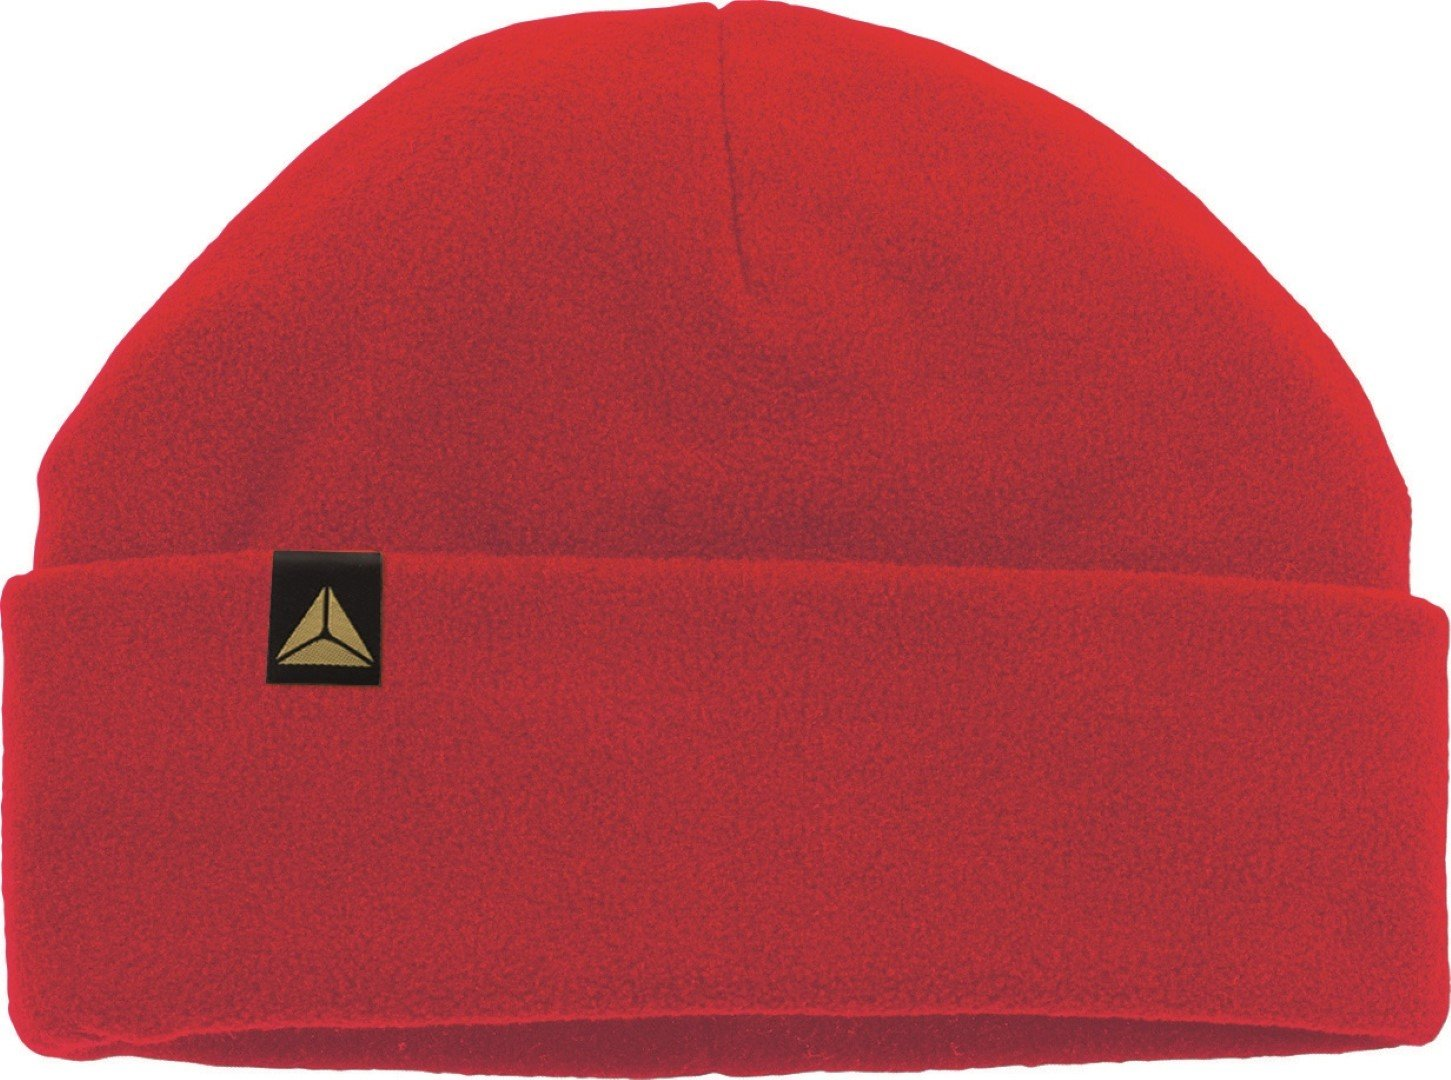 aa742fb1569 Delta Plus Cloth Frio Hat 3  Thinsulate Red Size Unica  Amazon.co.uk  DIY    Tools